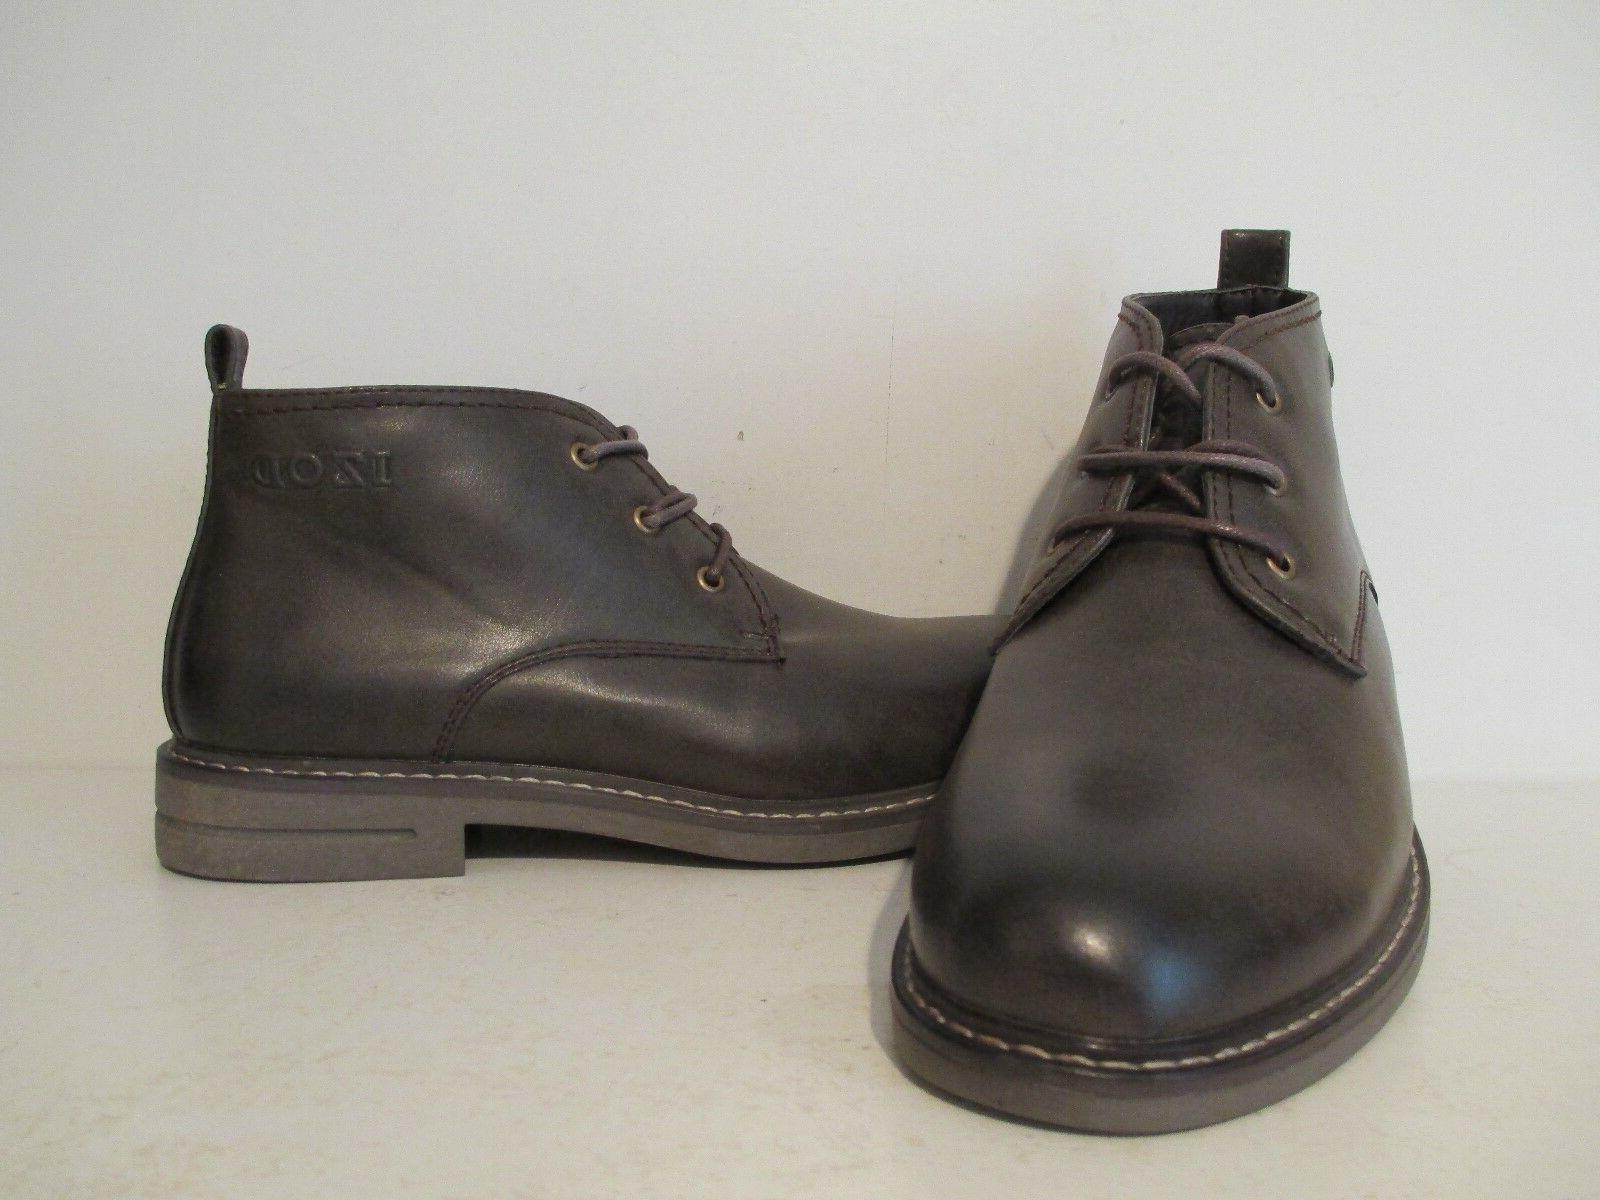 IZOD Mens Cally Casual Faux Leather Ankle Chukka Boots Dark